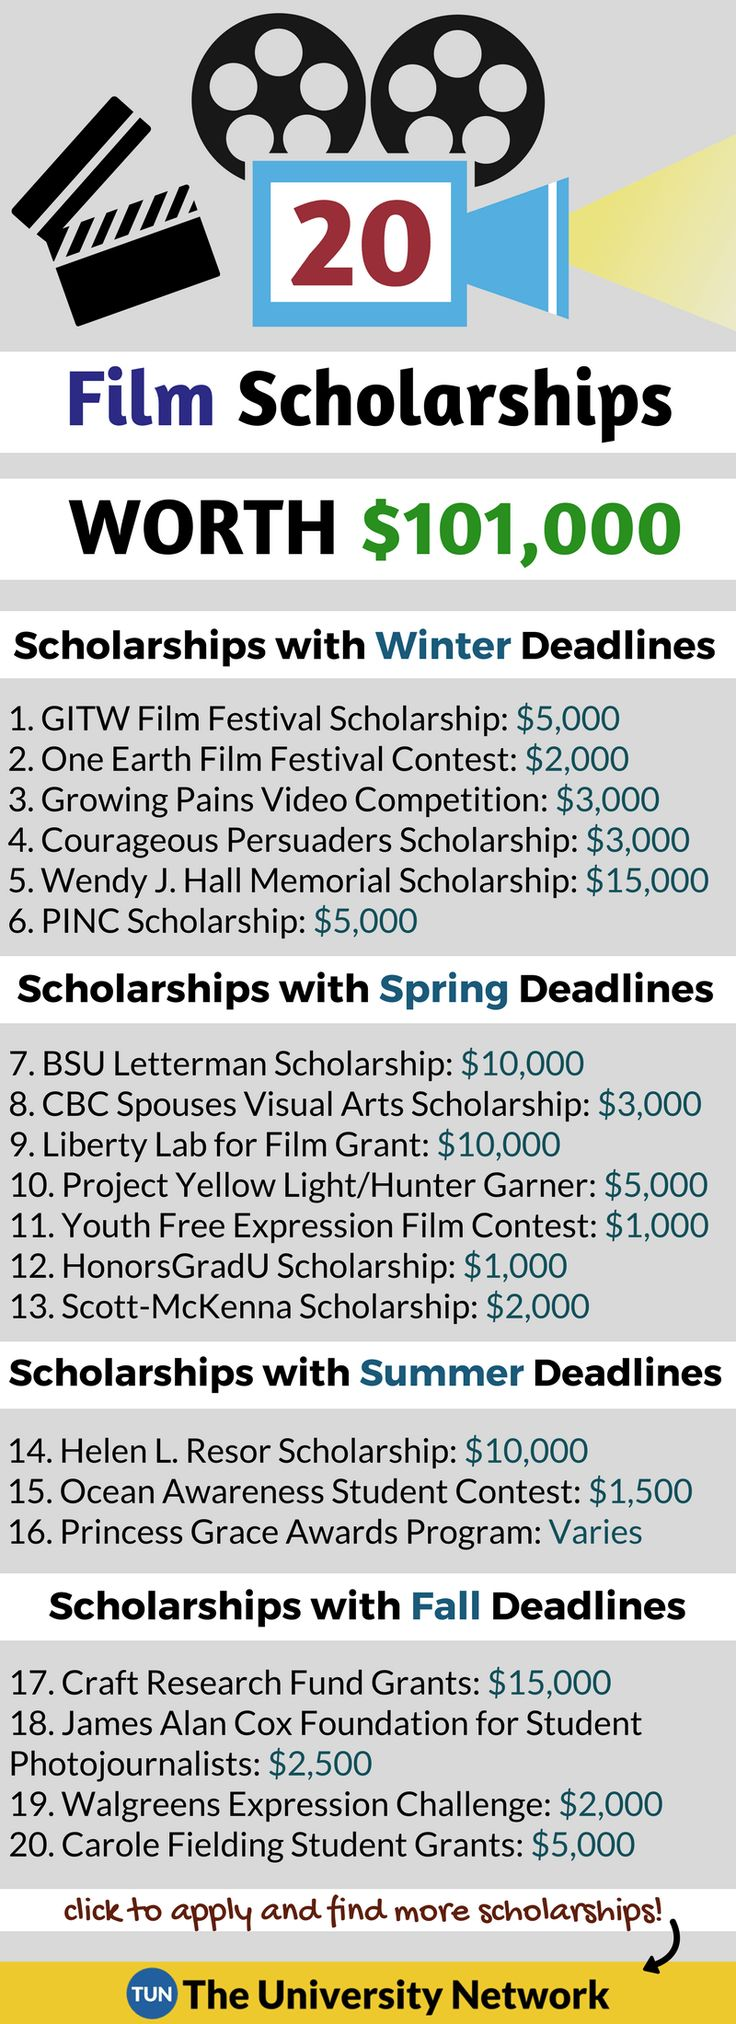 Here is a selection of Film Making Scholarships that are listed on TUN.